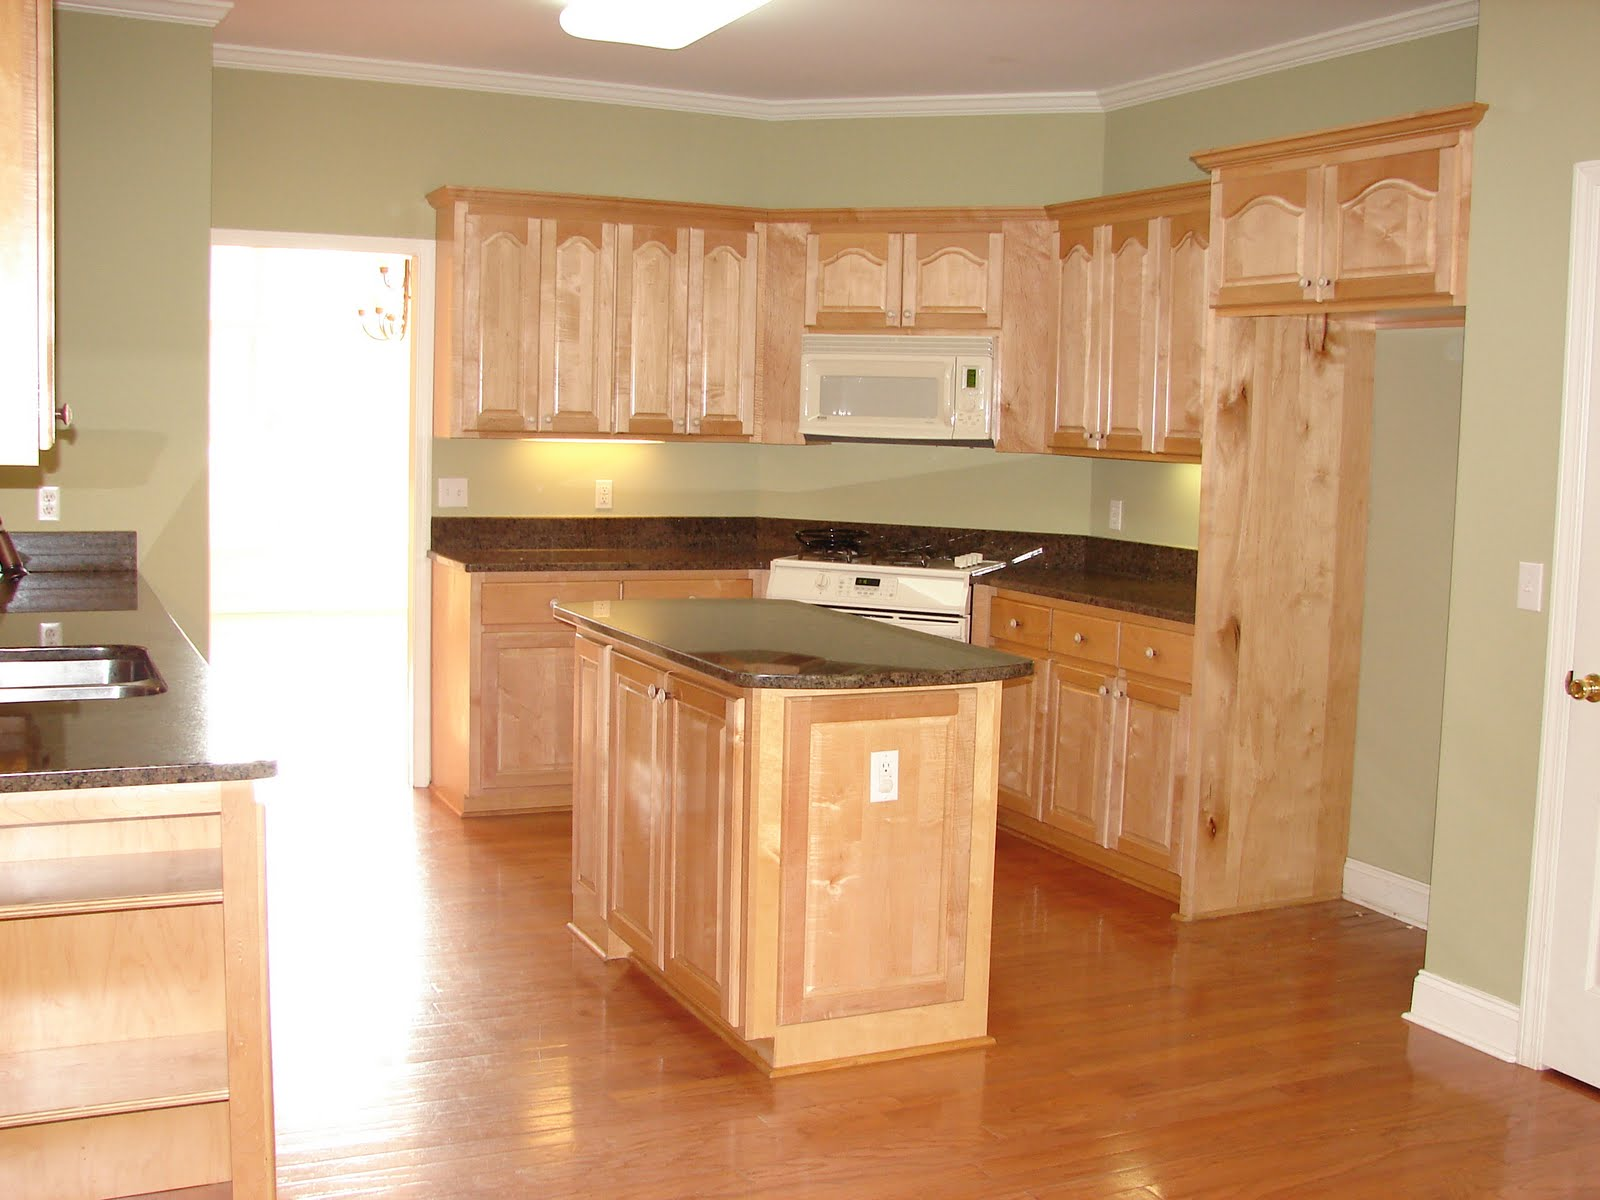 ... Kitchen Cabinets Doors Floor And Decor Cabinets B E Interiors My  Version Of A Quot Budget Quot Backsplash ...